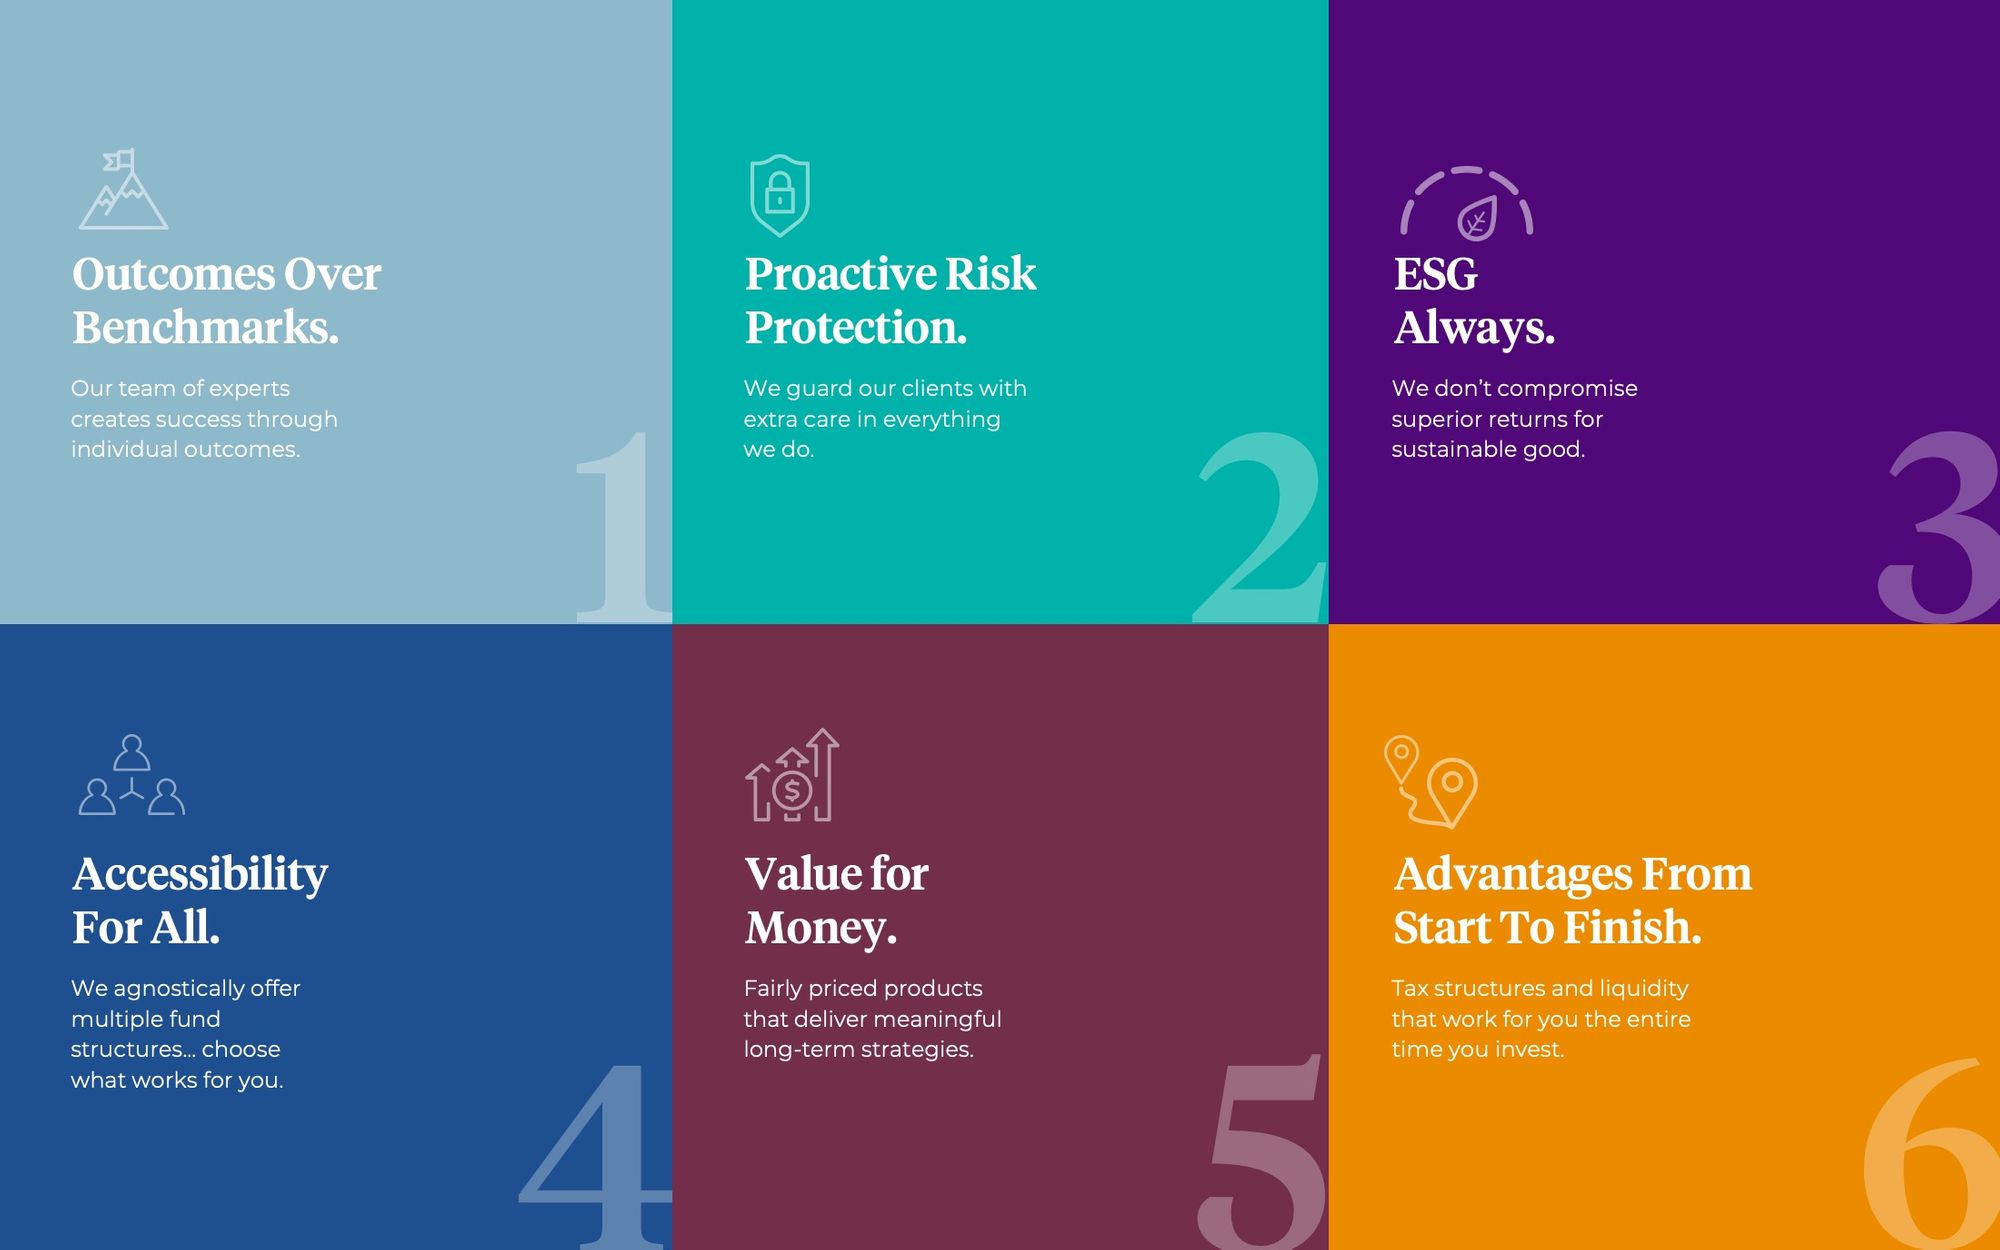 The Six principles at Purpose Investments. 1. Outcomes over benchmarks 2. Proactive risk protection 3. ESG always 4. Accessibility for all. 5. Value for money 6. Advantages from start to finish G